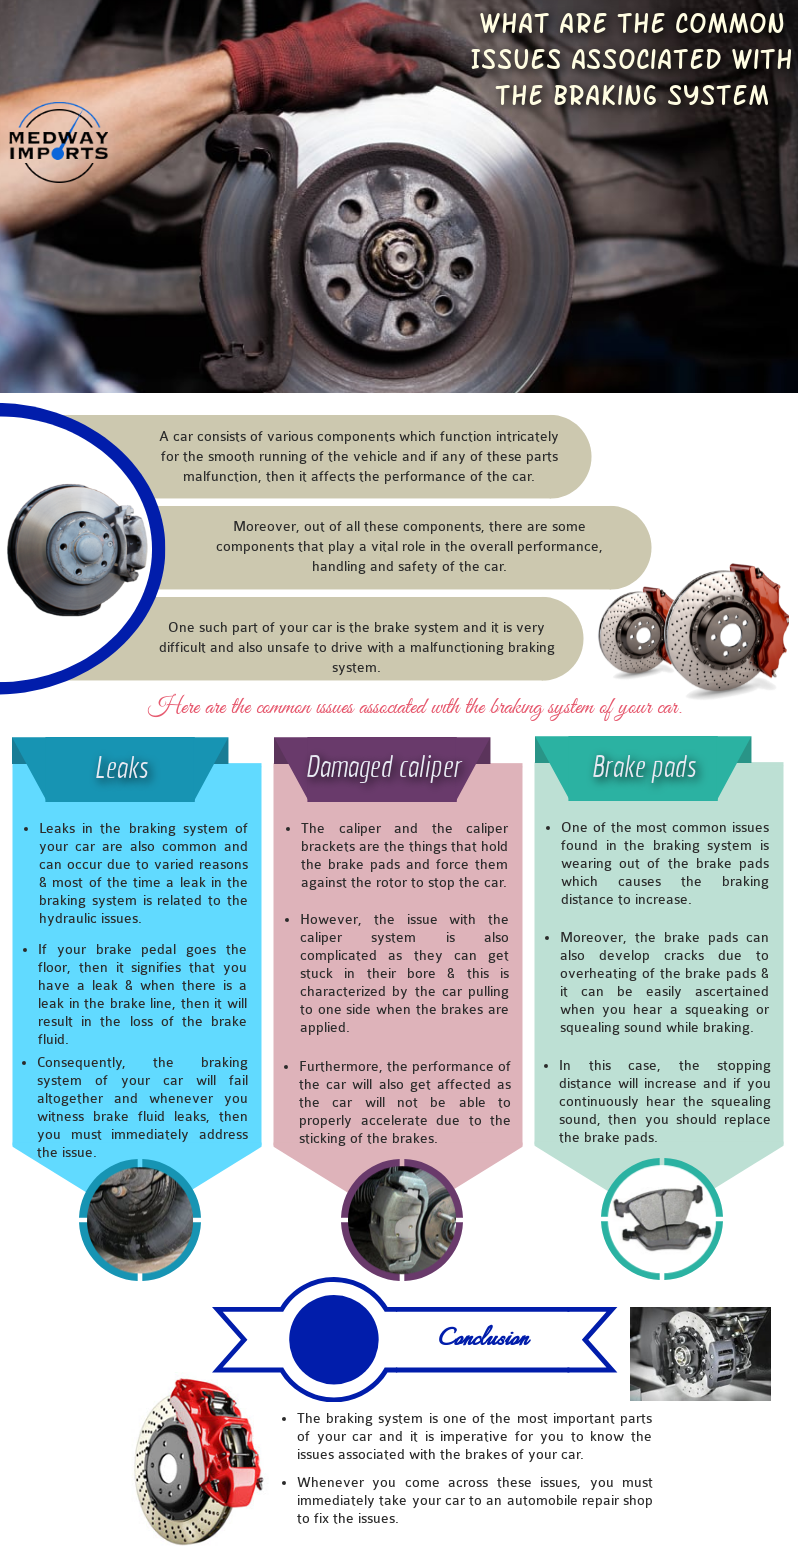 The braking system is one of the most important systems in your car